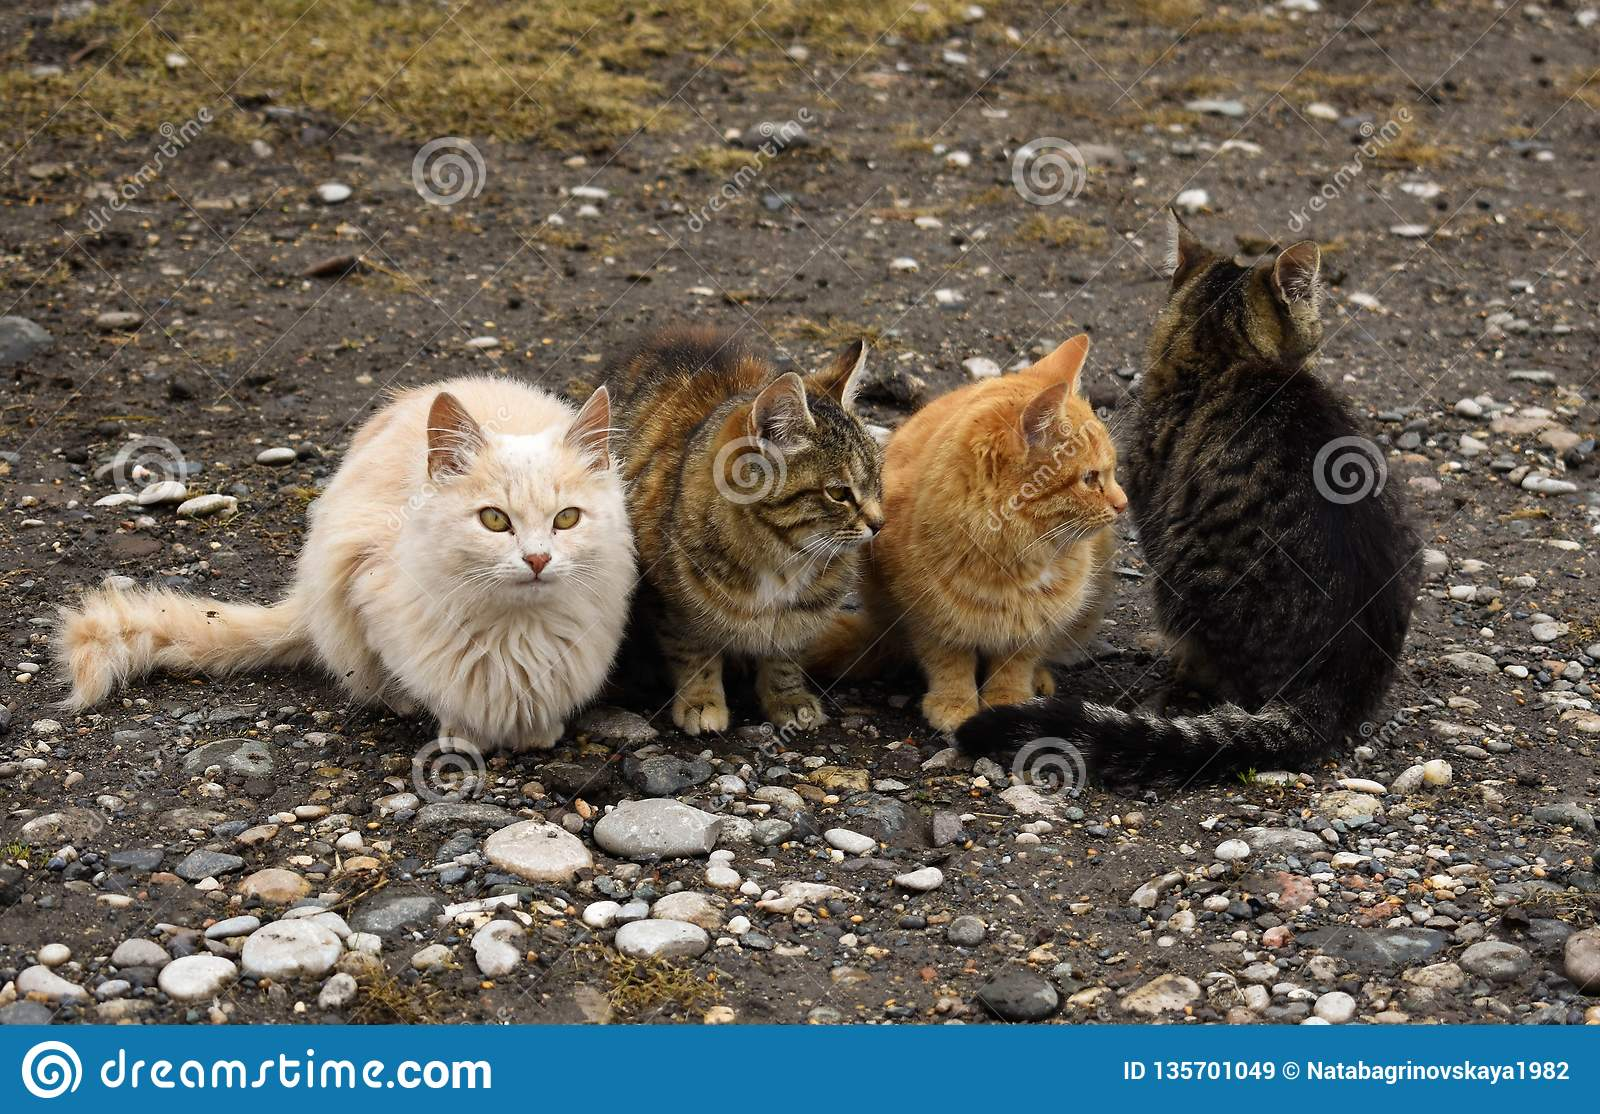 Cat cats pet kitten wild homeless stray animal